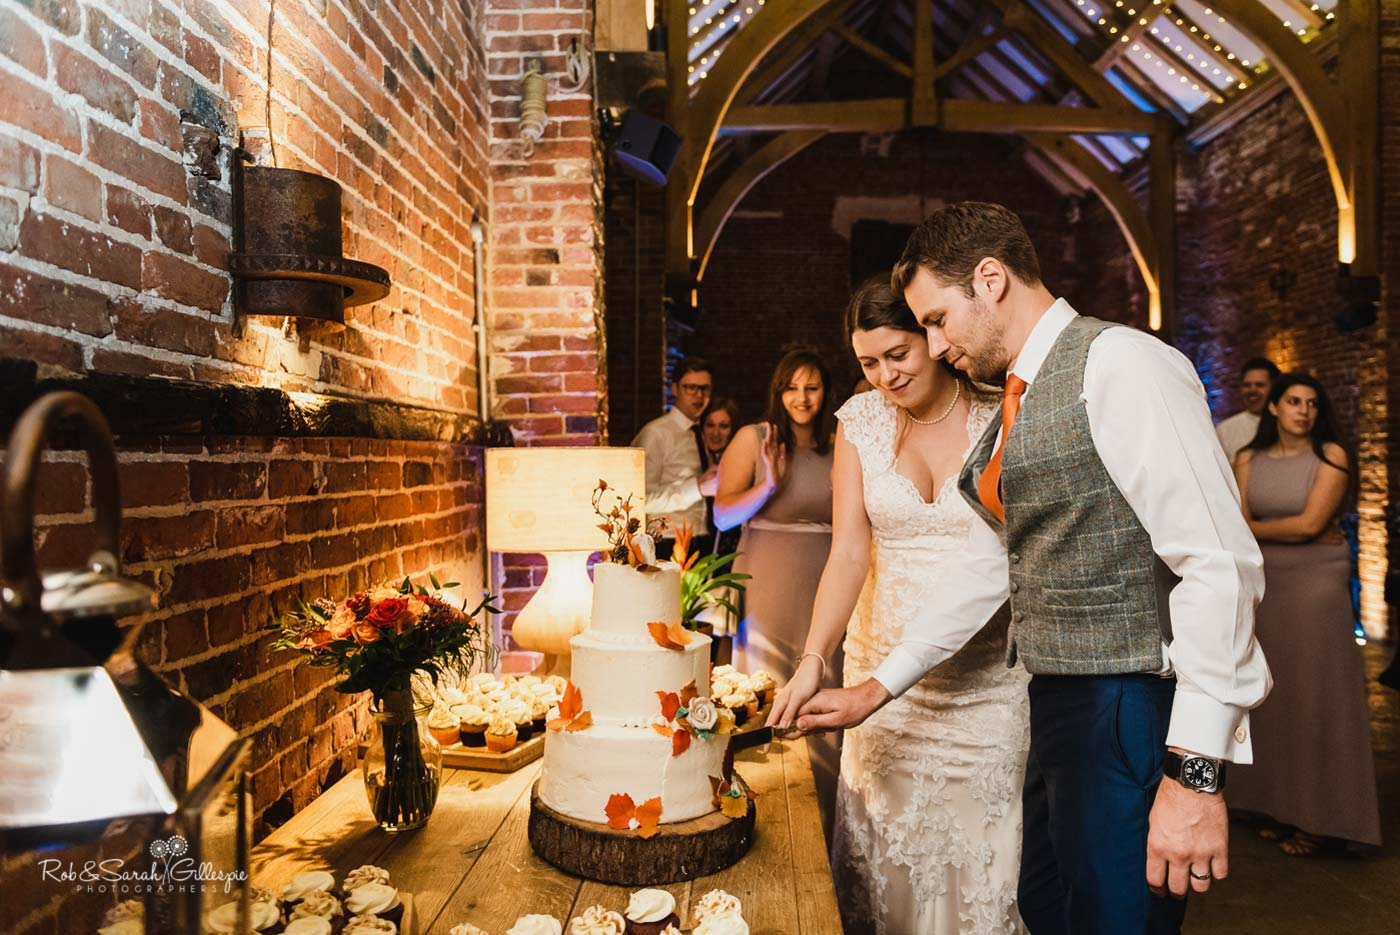 Bride & groom cut wedding cake at Hazel Gap Barn